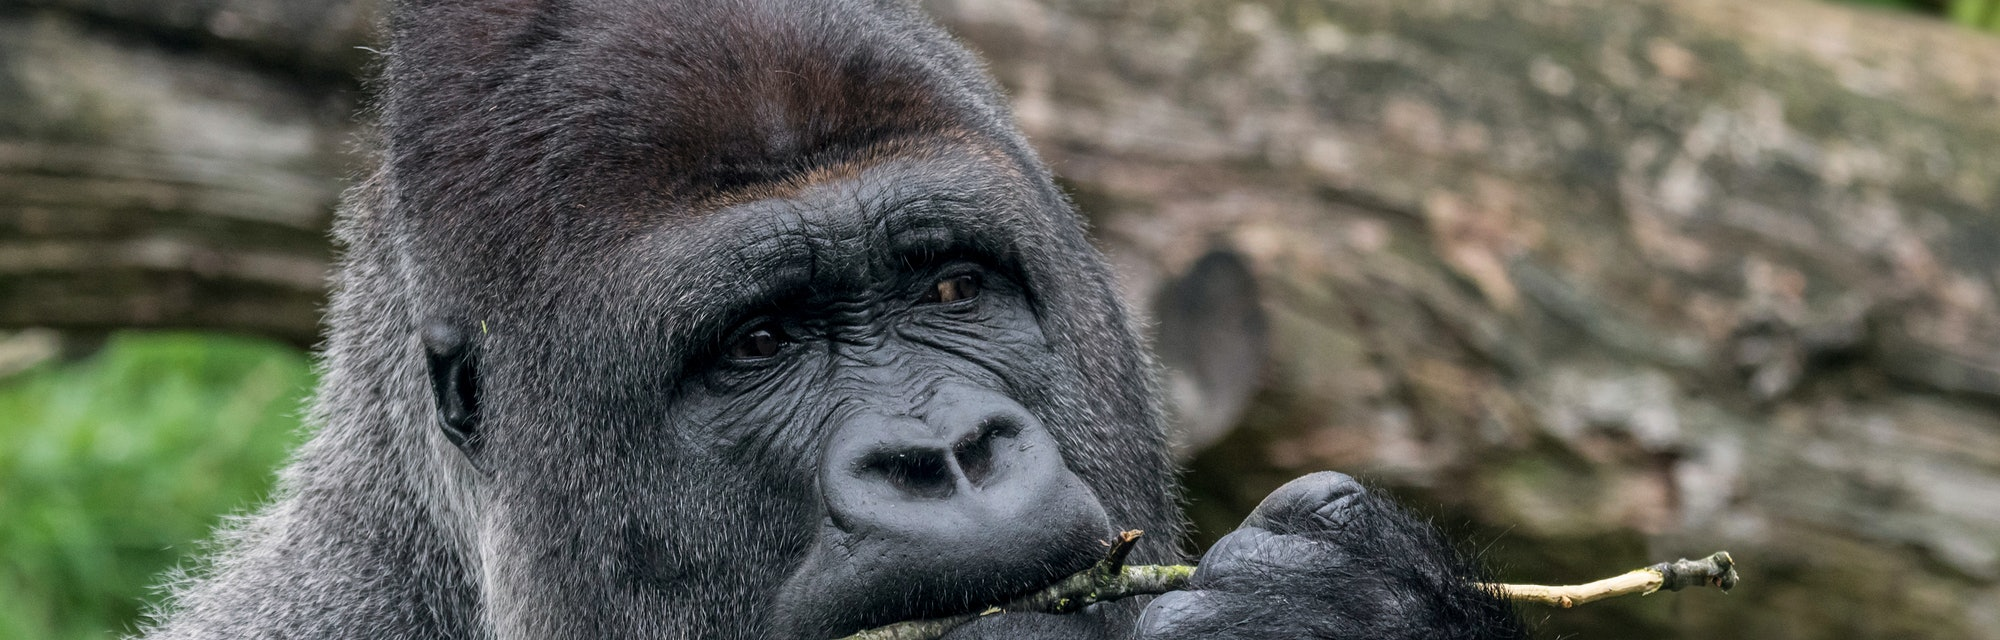 Western lowland gorilla close-up of male silverback chewing on twig